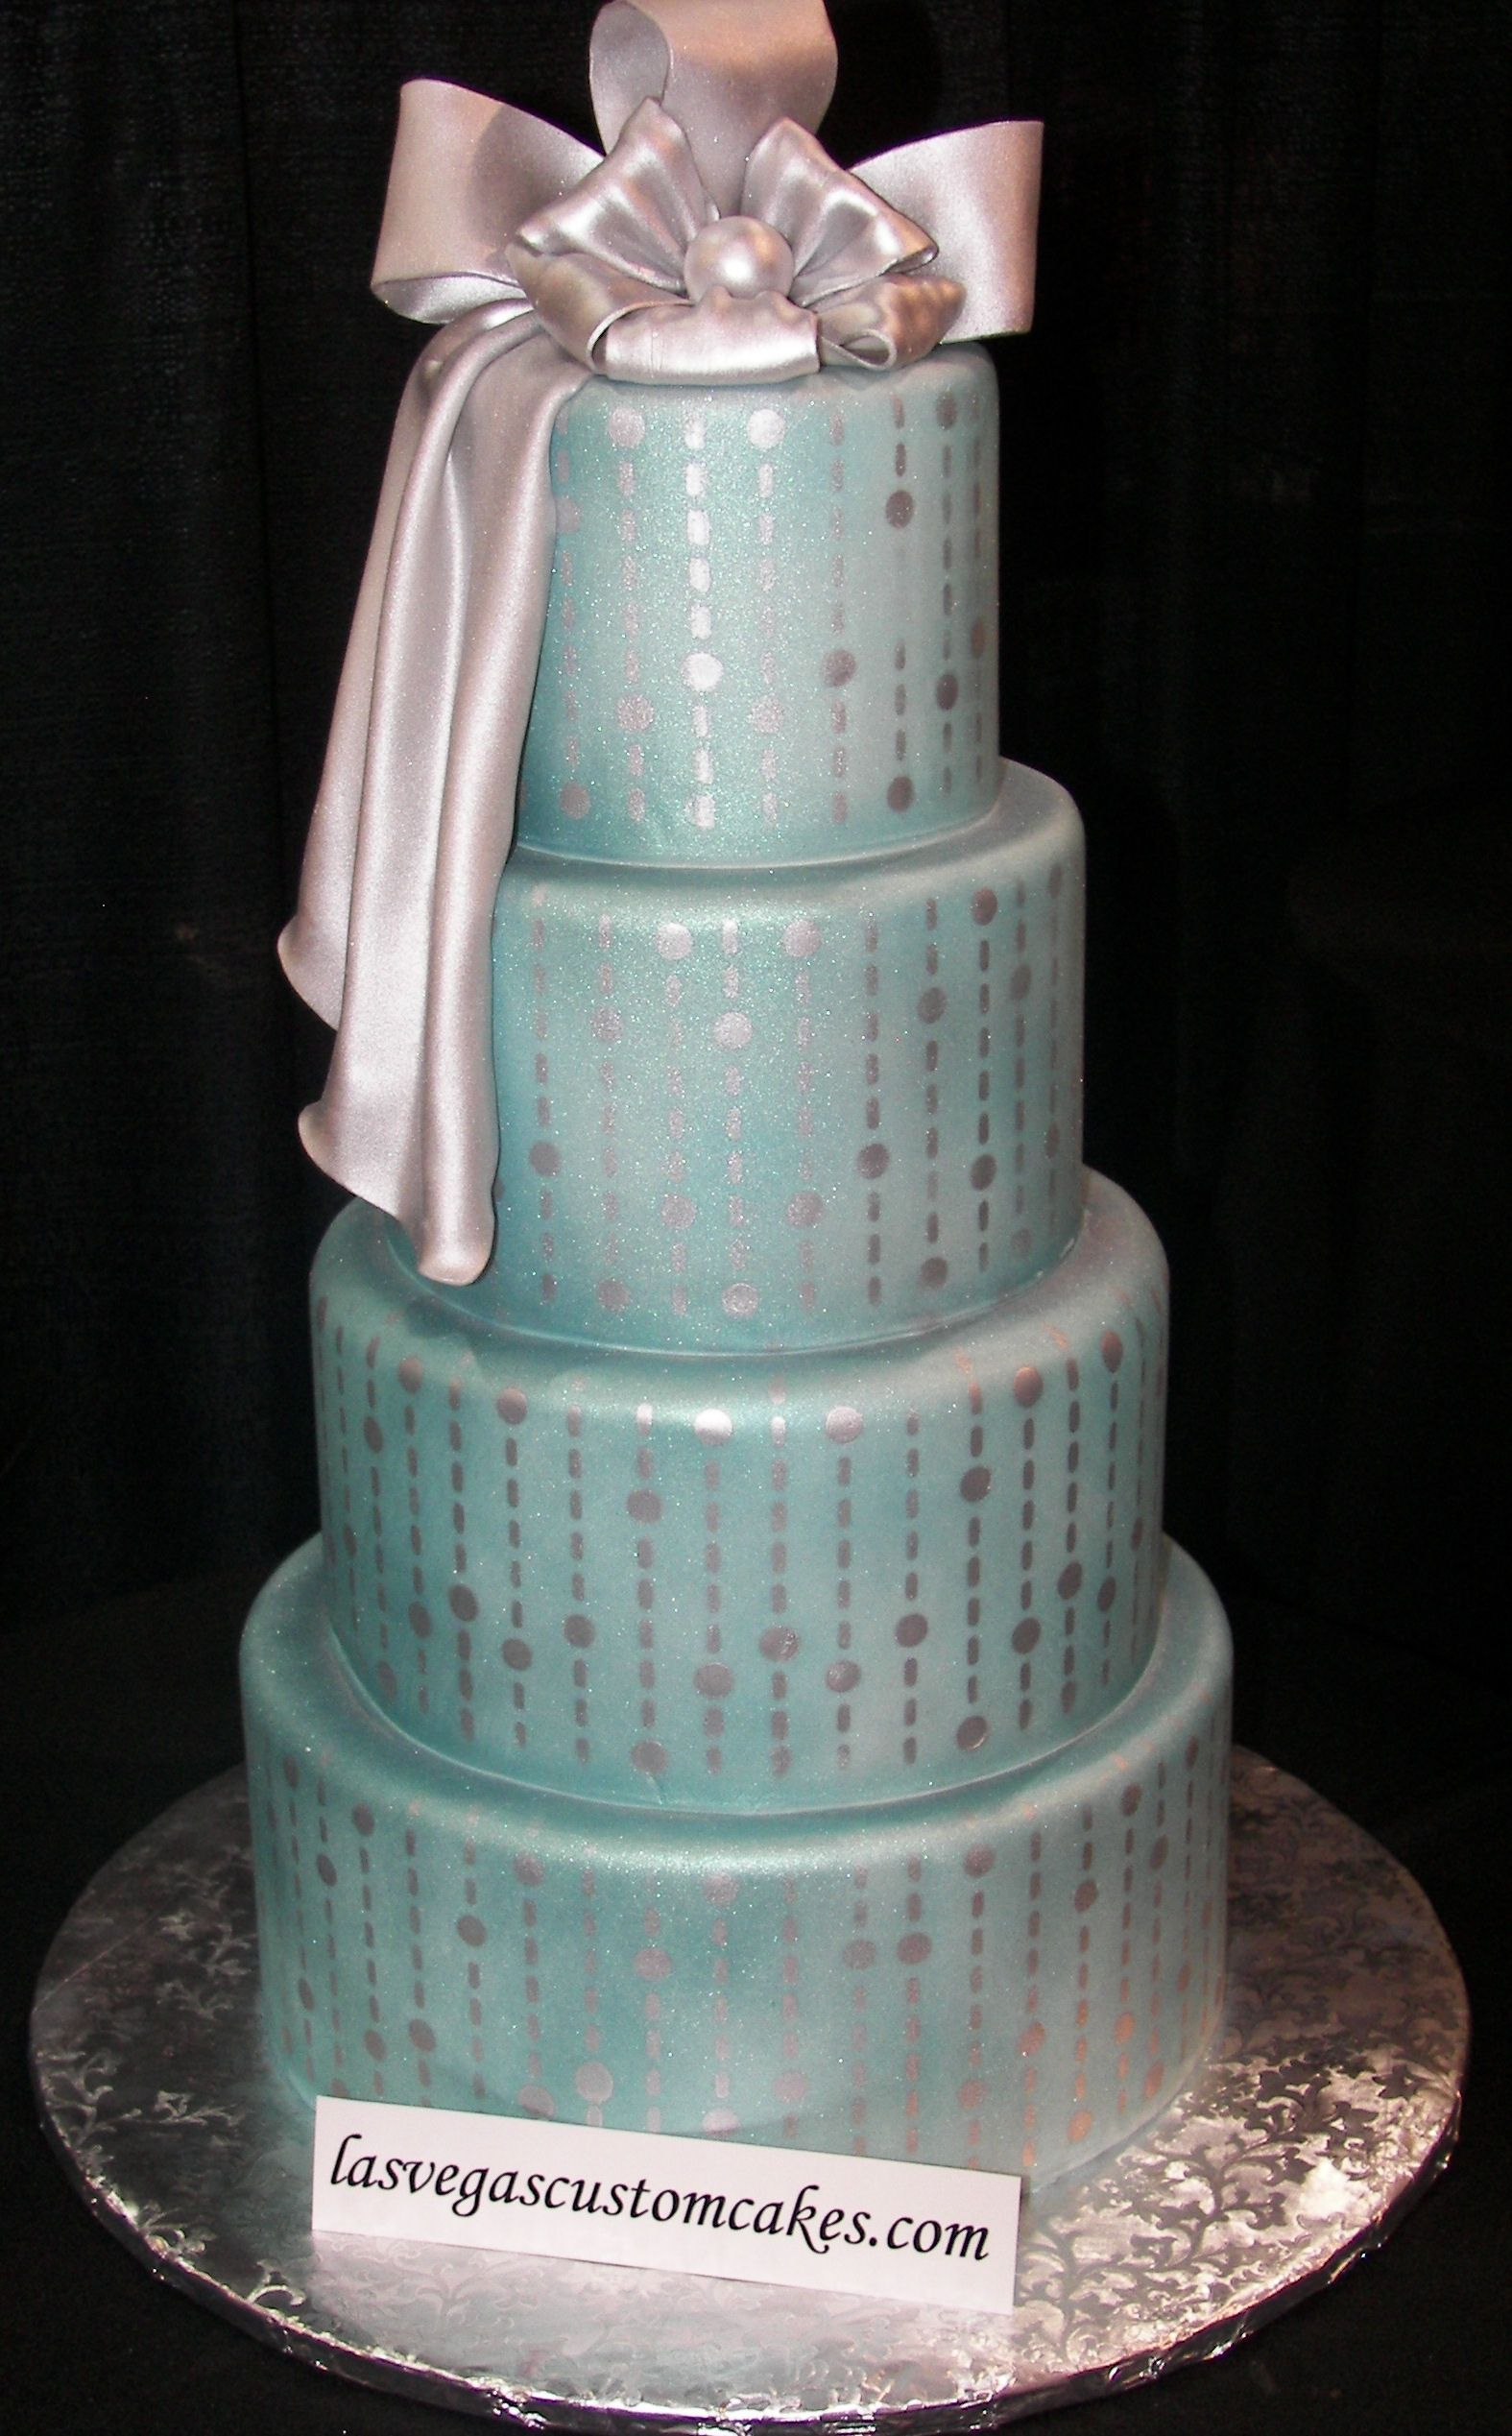 pale teal cake with silver accents and bow